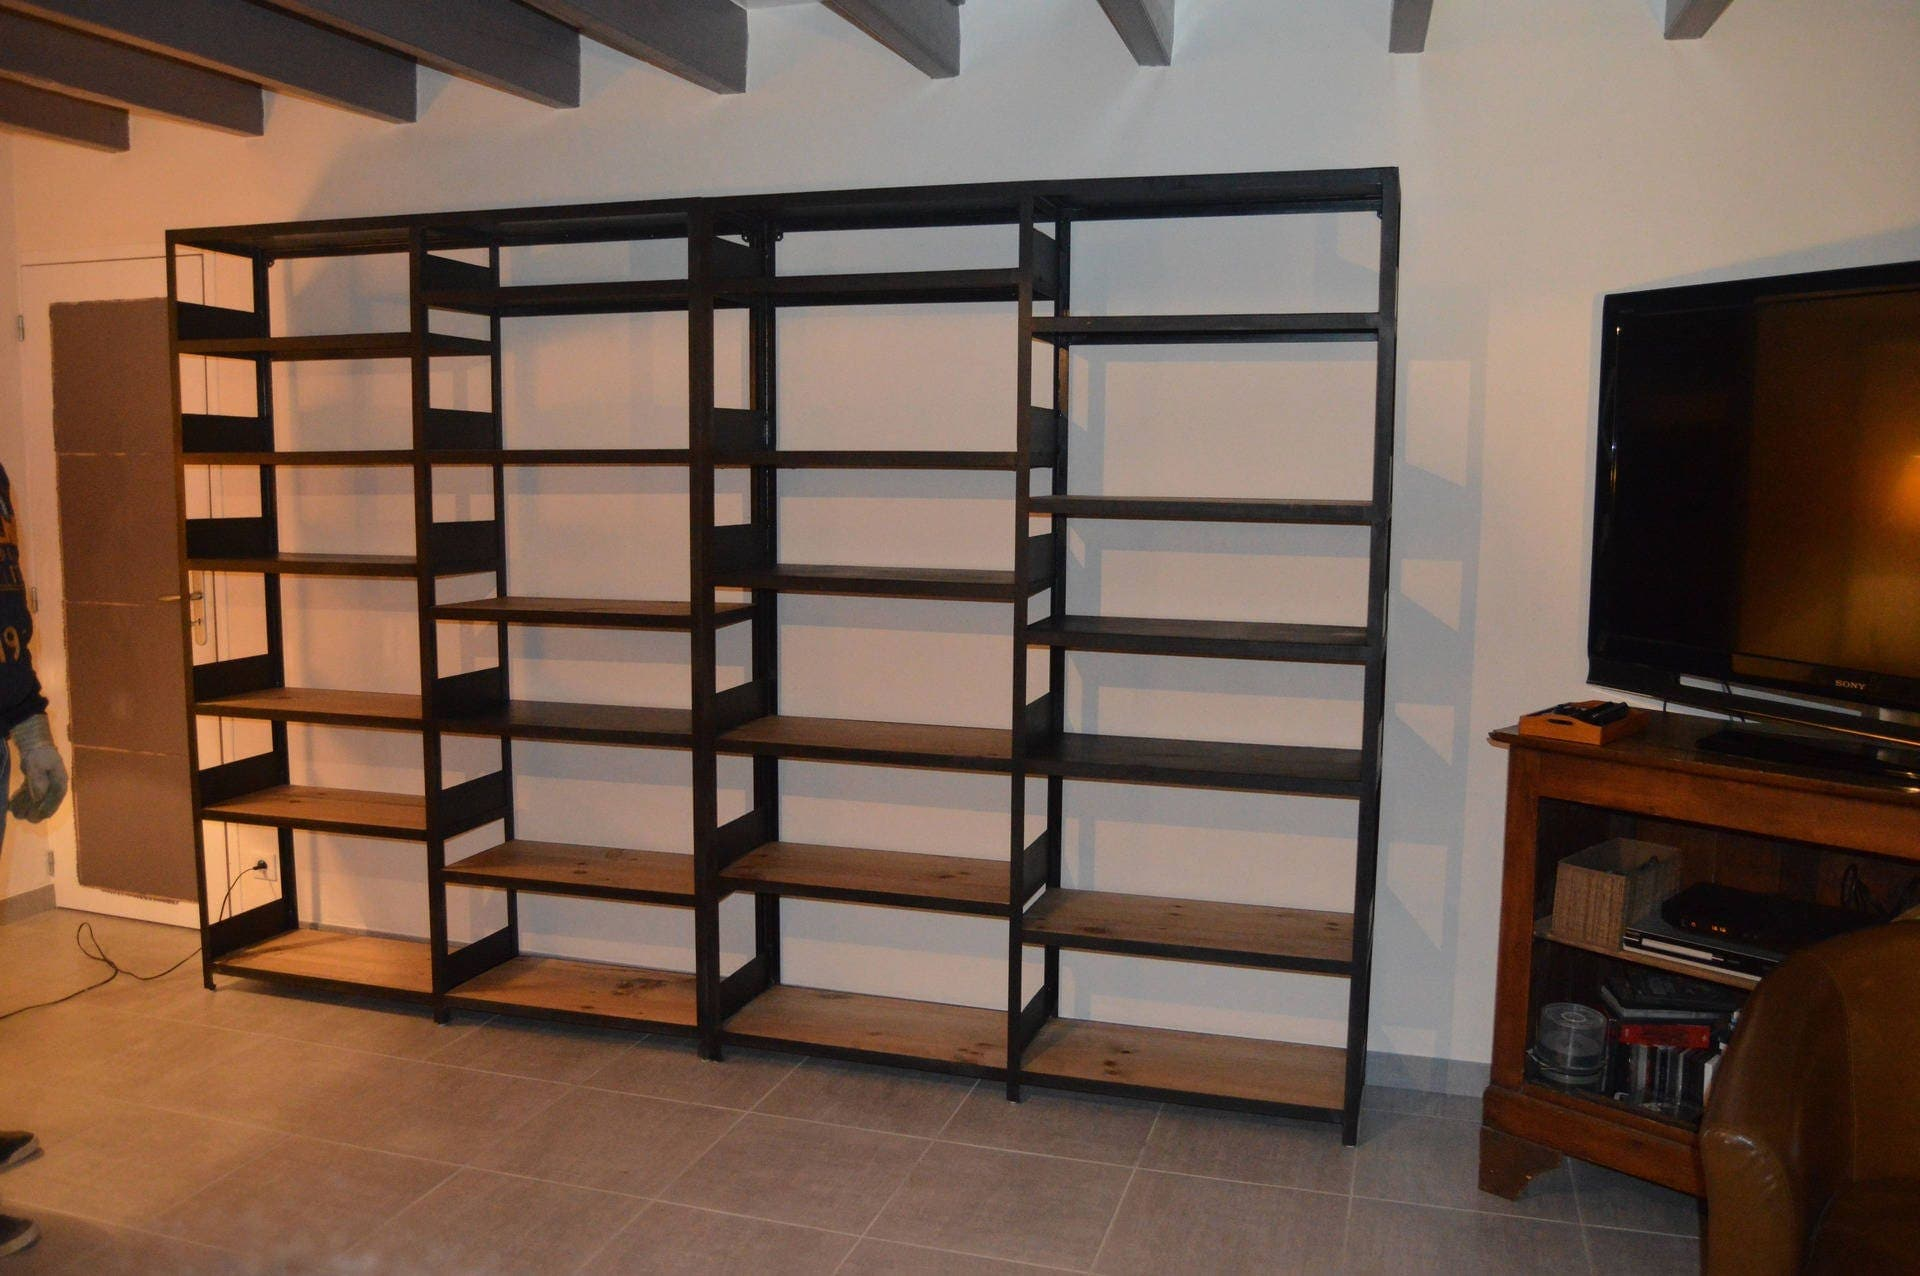 meuble industriel biblioth que acier et bois. Black Bedroom Furniture Sets. Home Design Ideas